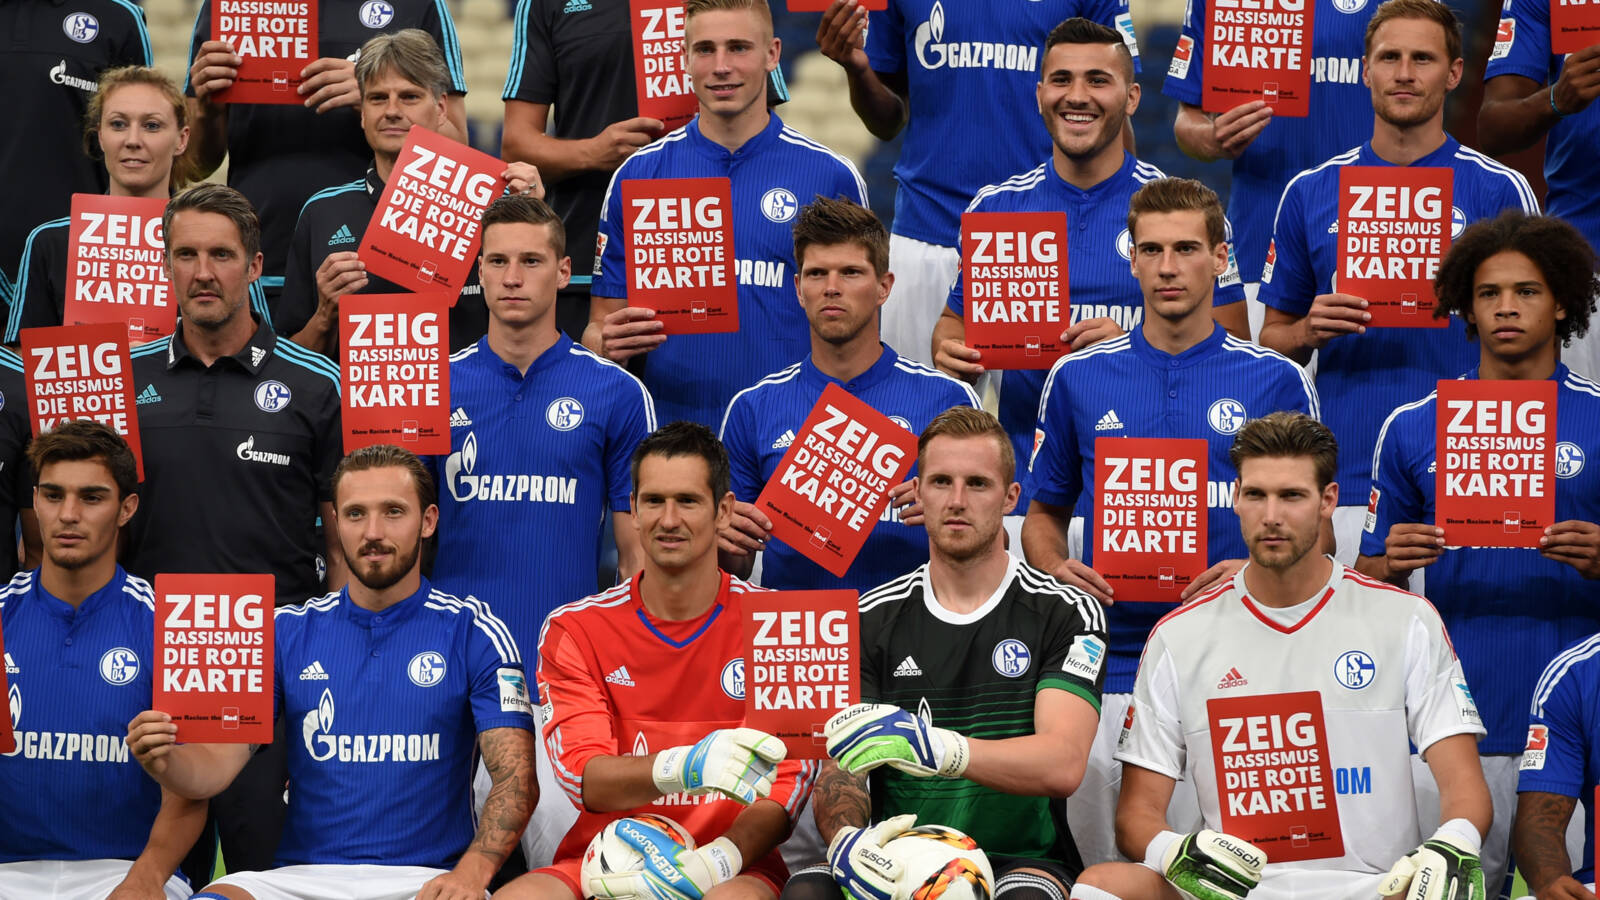 The Schalke team in 2015, with Show racism the red card signs